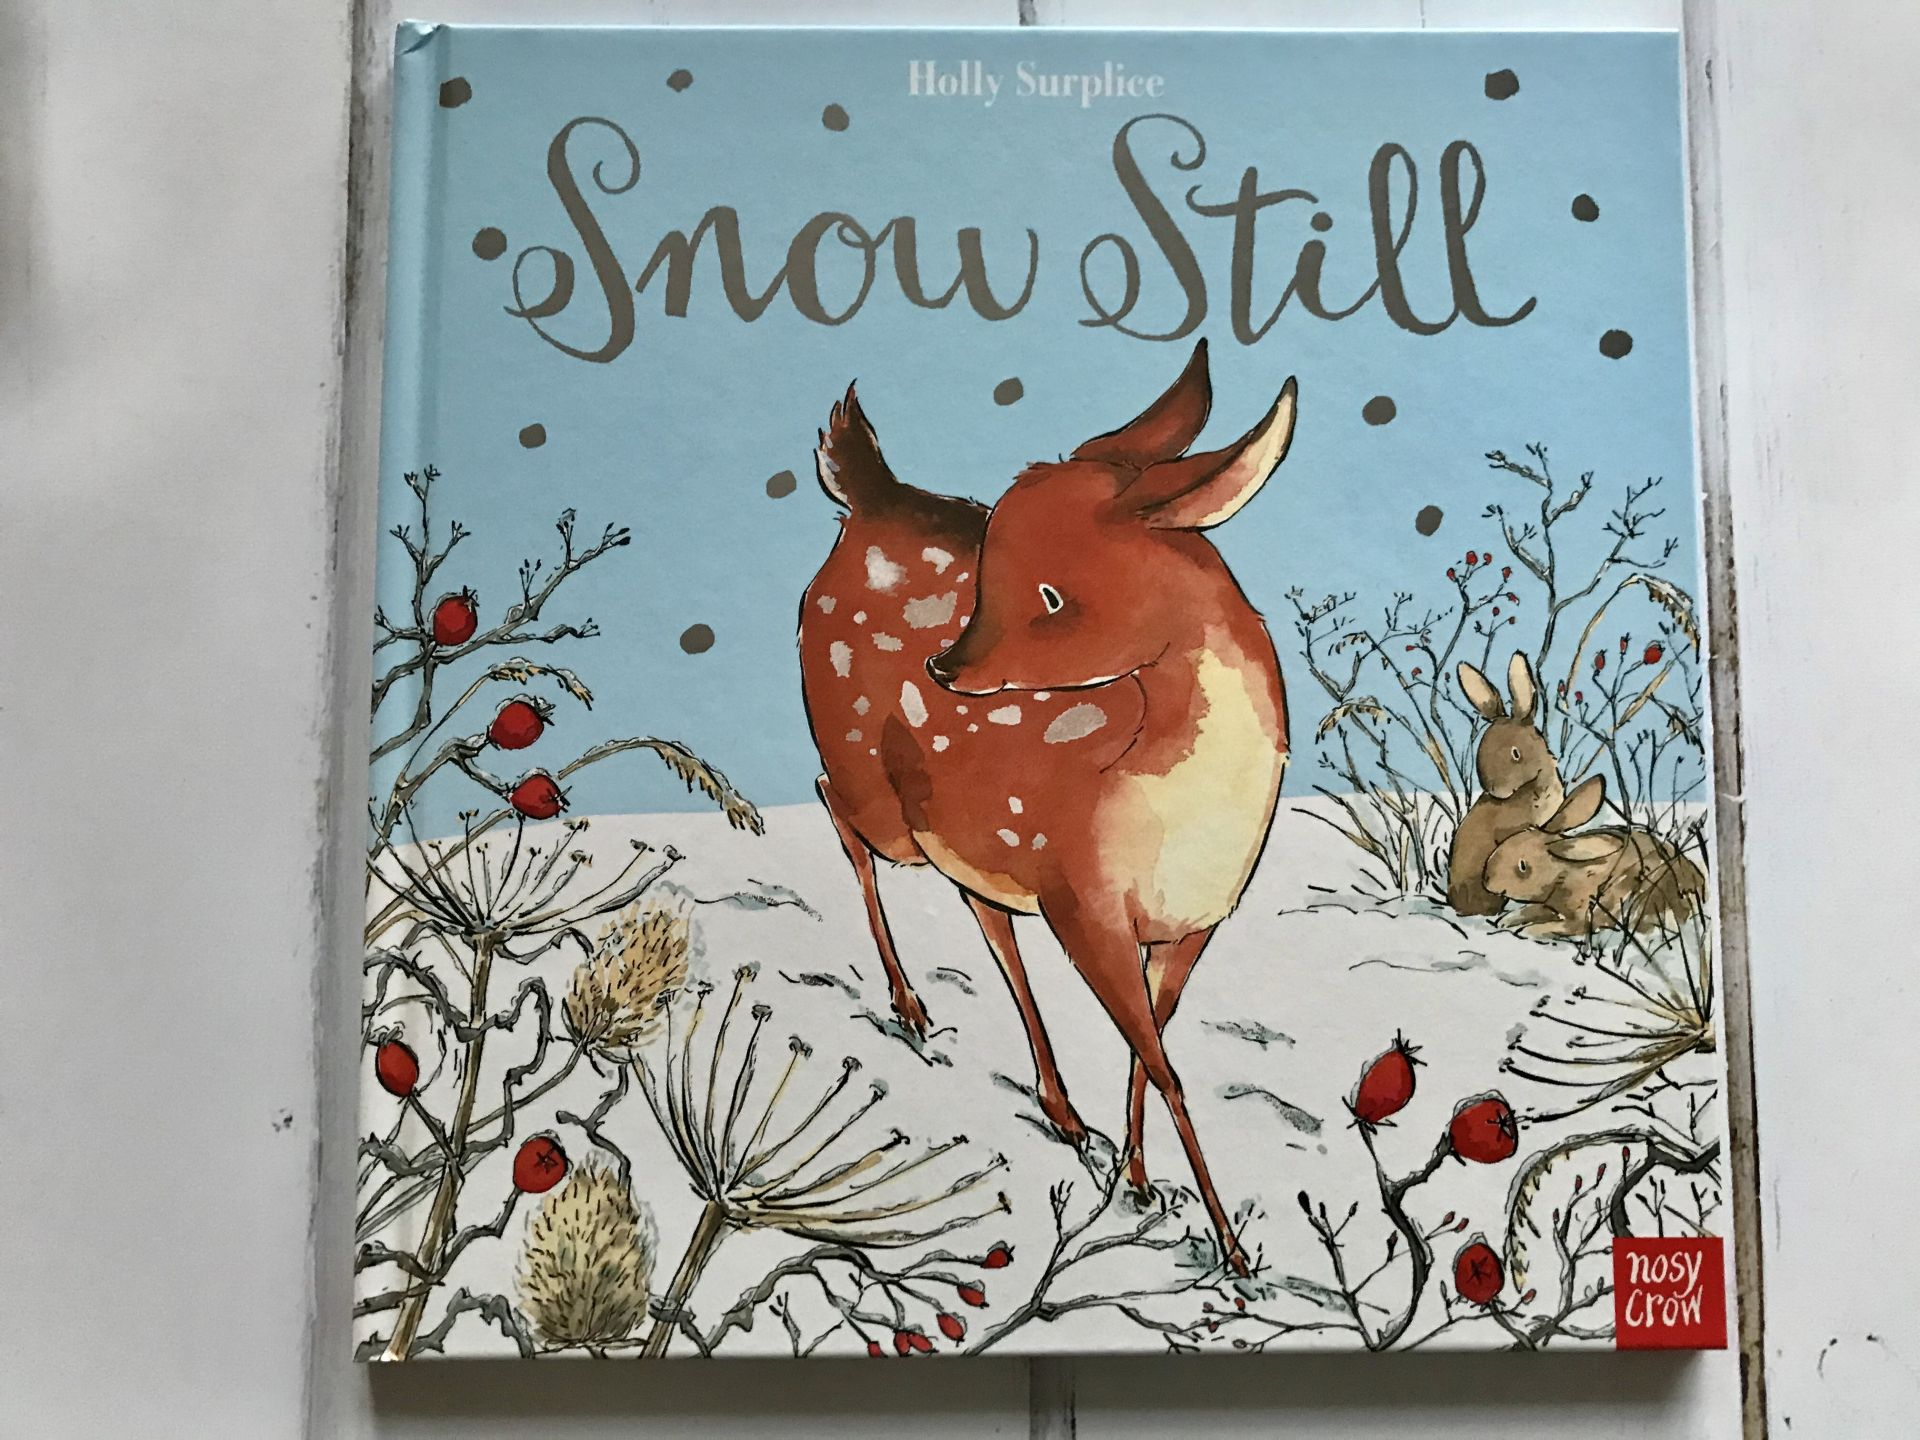 A Christmas storybook called snow still